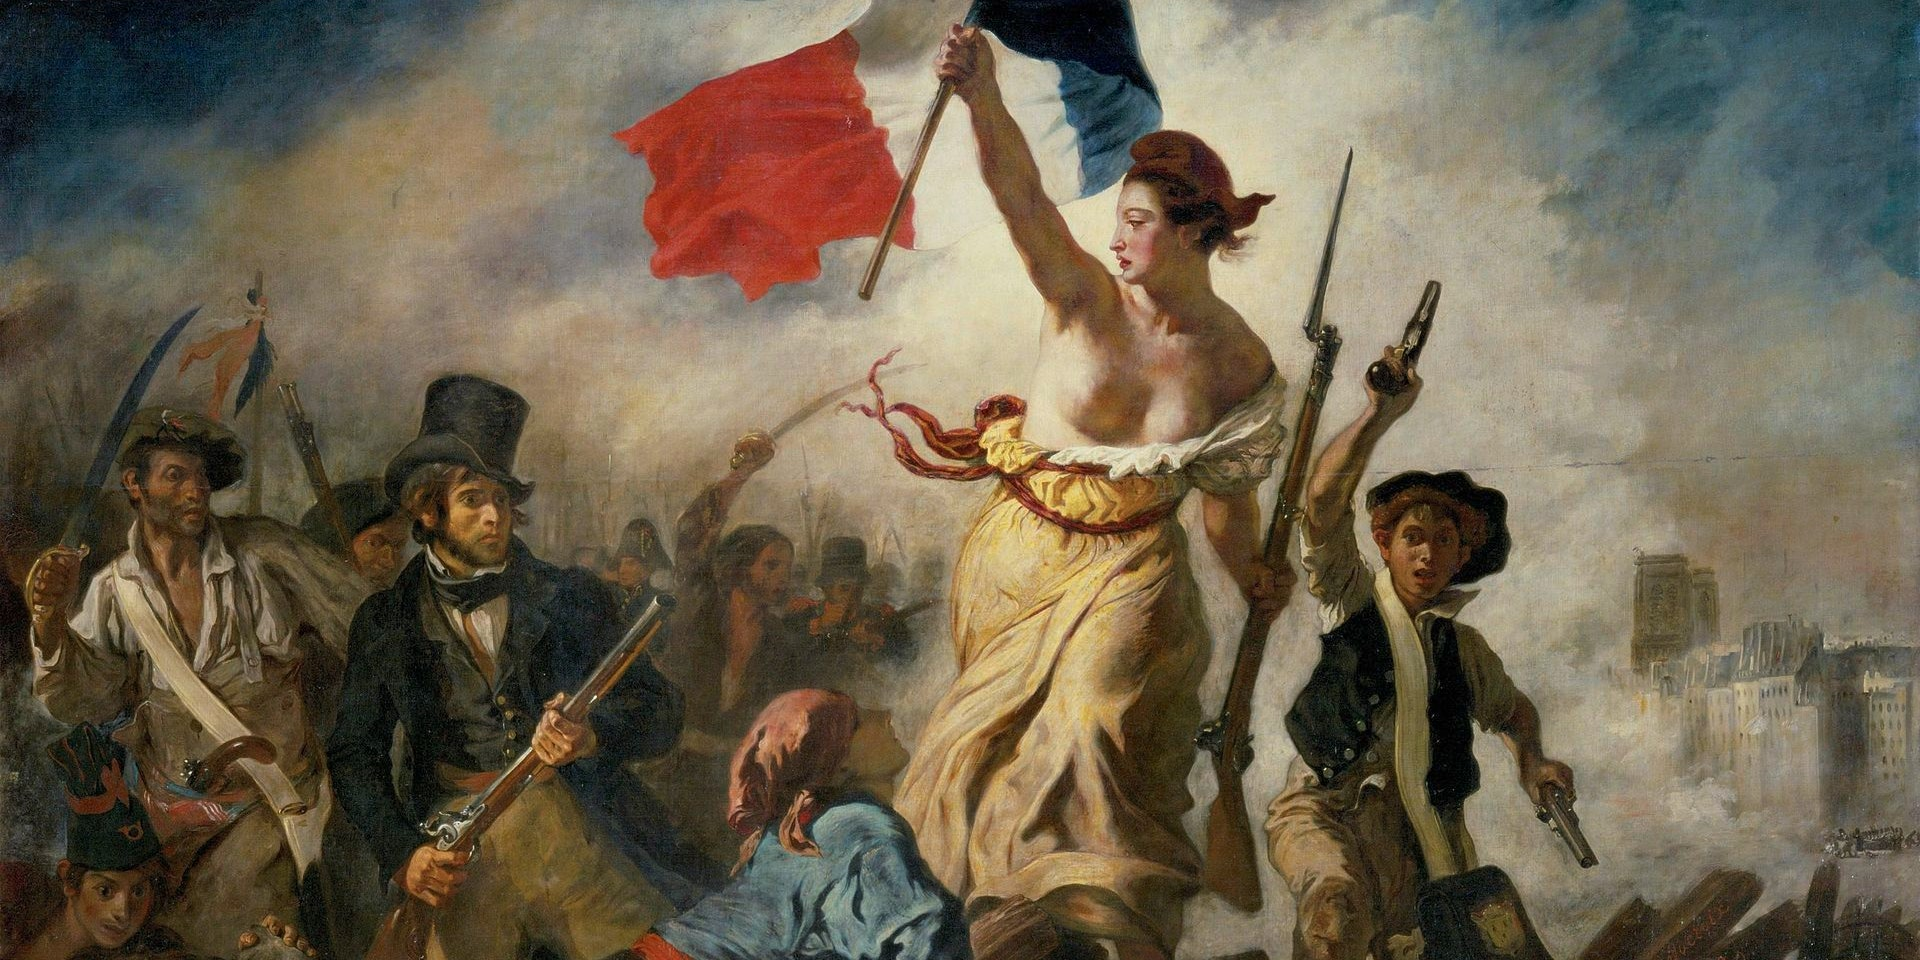 https://fsmedia.imgix.net/46/e4/c5/2a/98ab/4ff3/826e/8edc5e1f88ee/liberty-leading-the-people-by-eugene-delacroix.jpeg?rect=0,15,1920,960&dpr=1.5&auto=format,compress&q=75